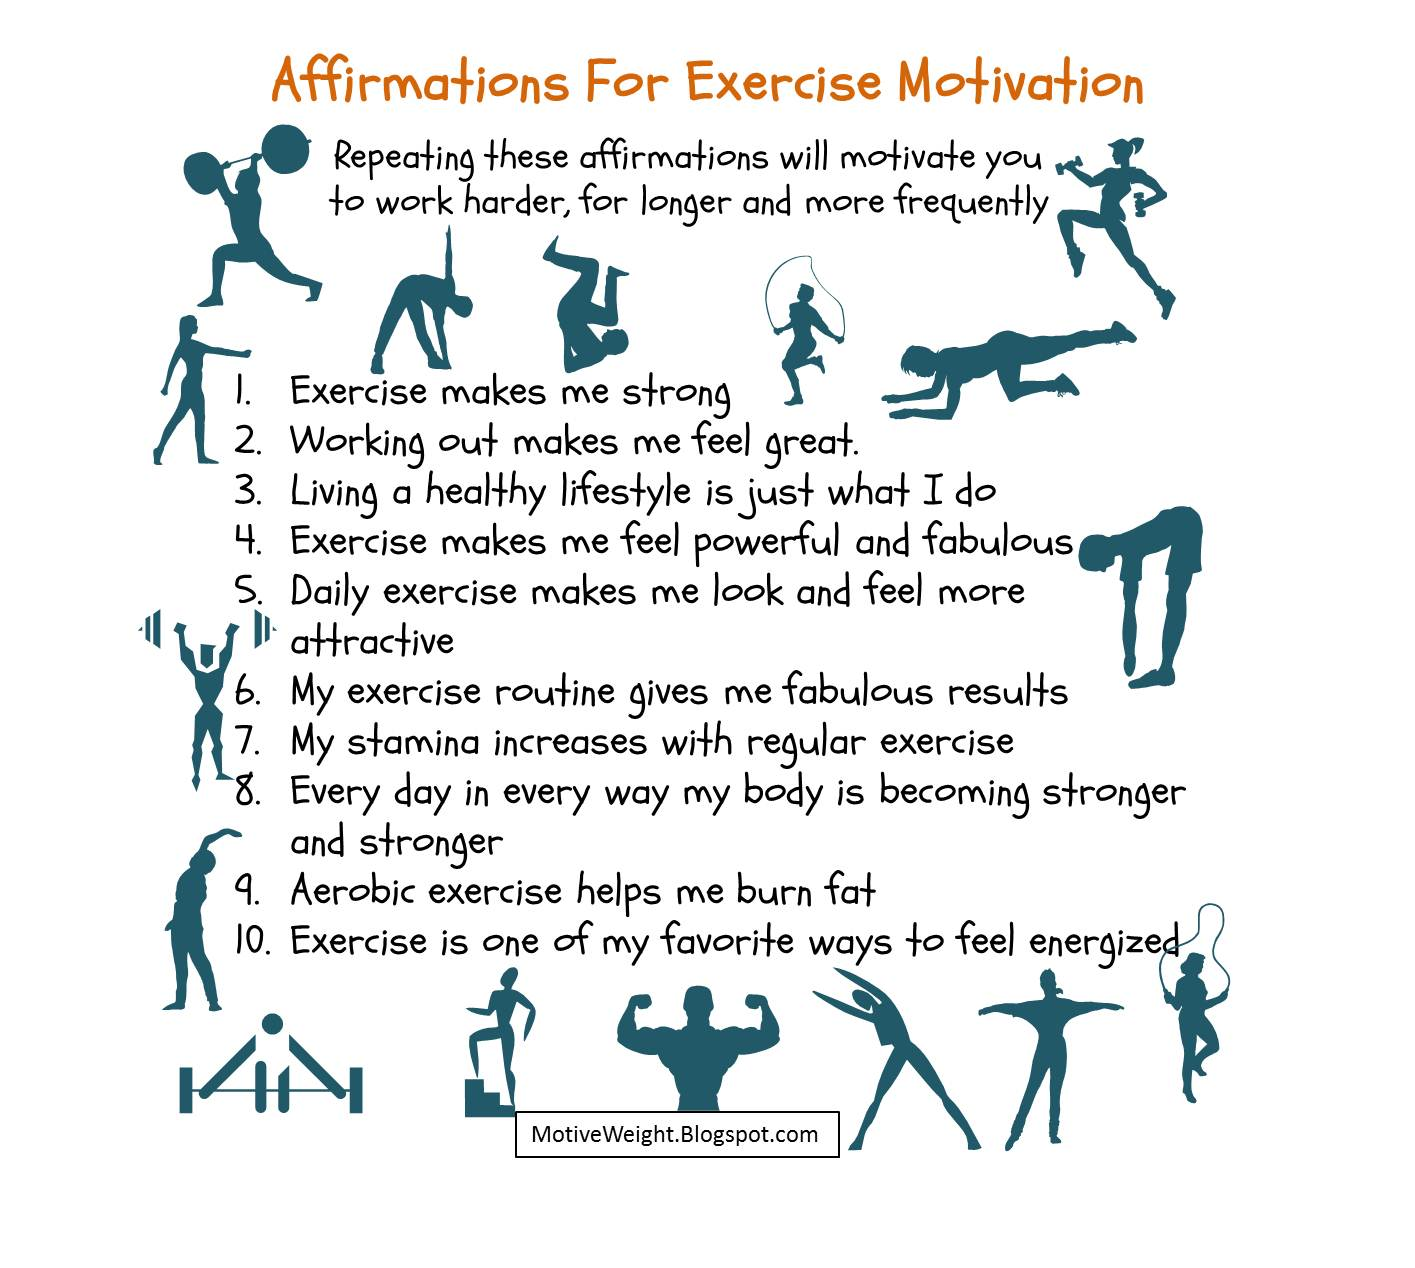 Motiveweight Affirmations For Exercise Motivation